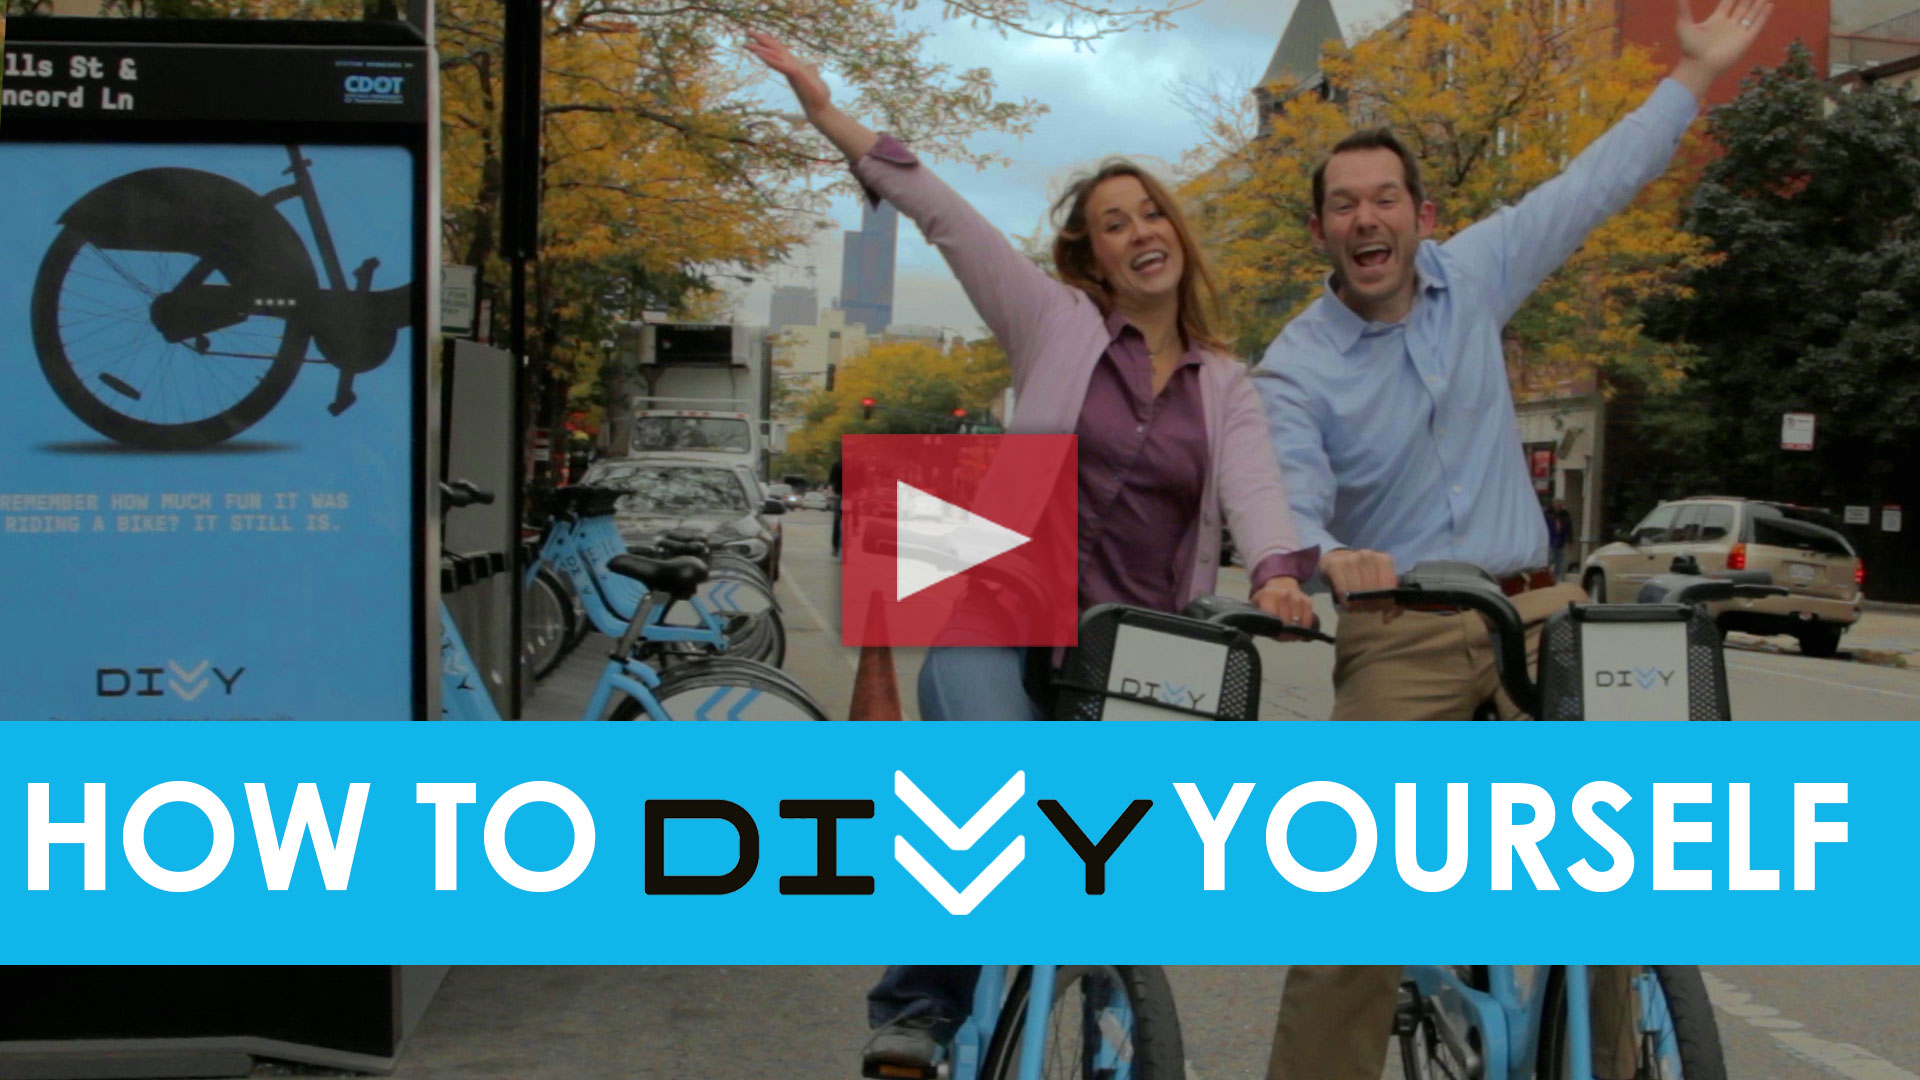 How to Divvy, Yourself!